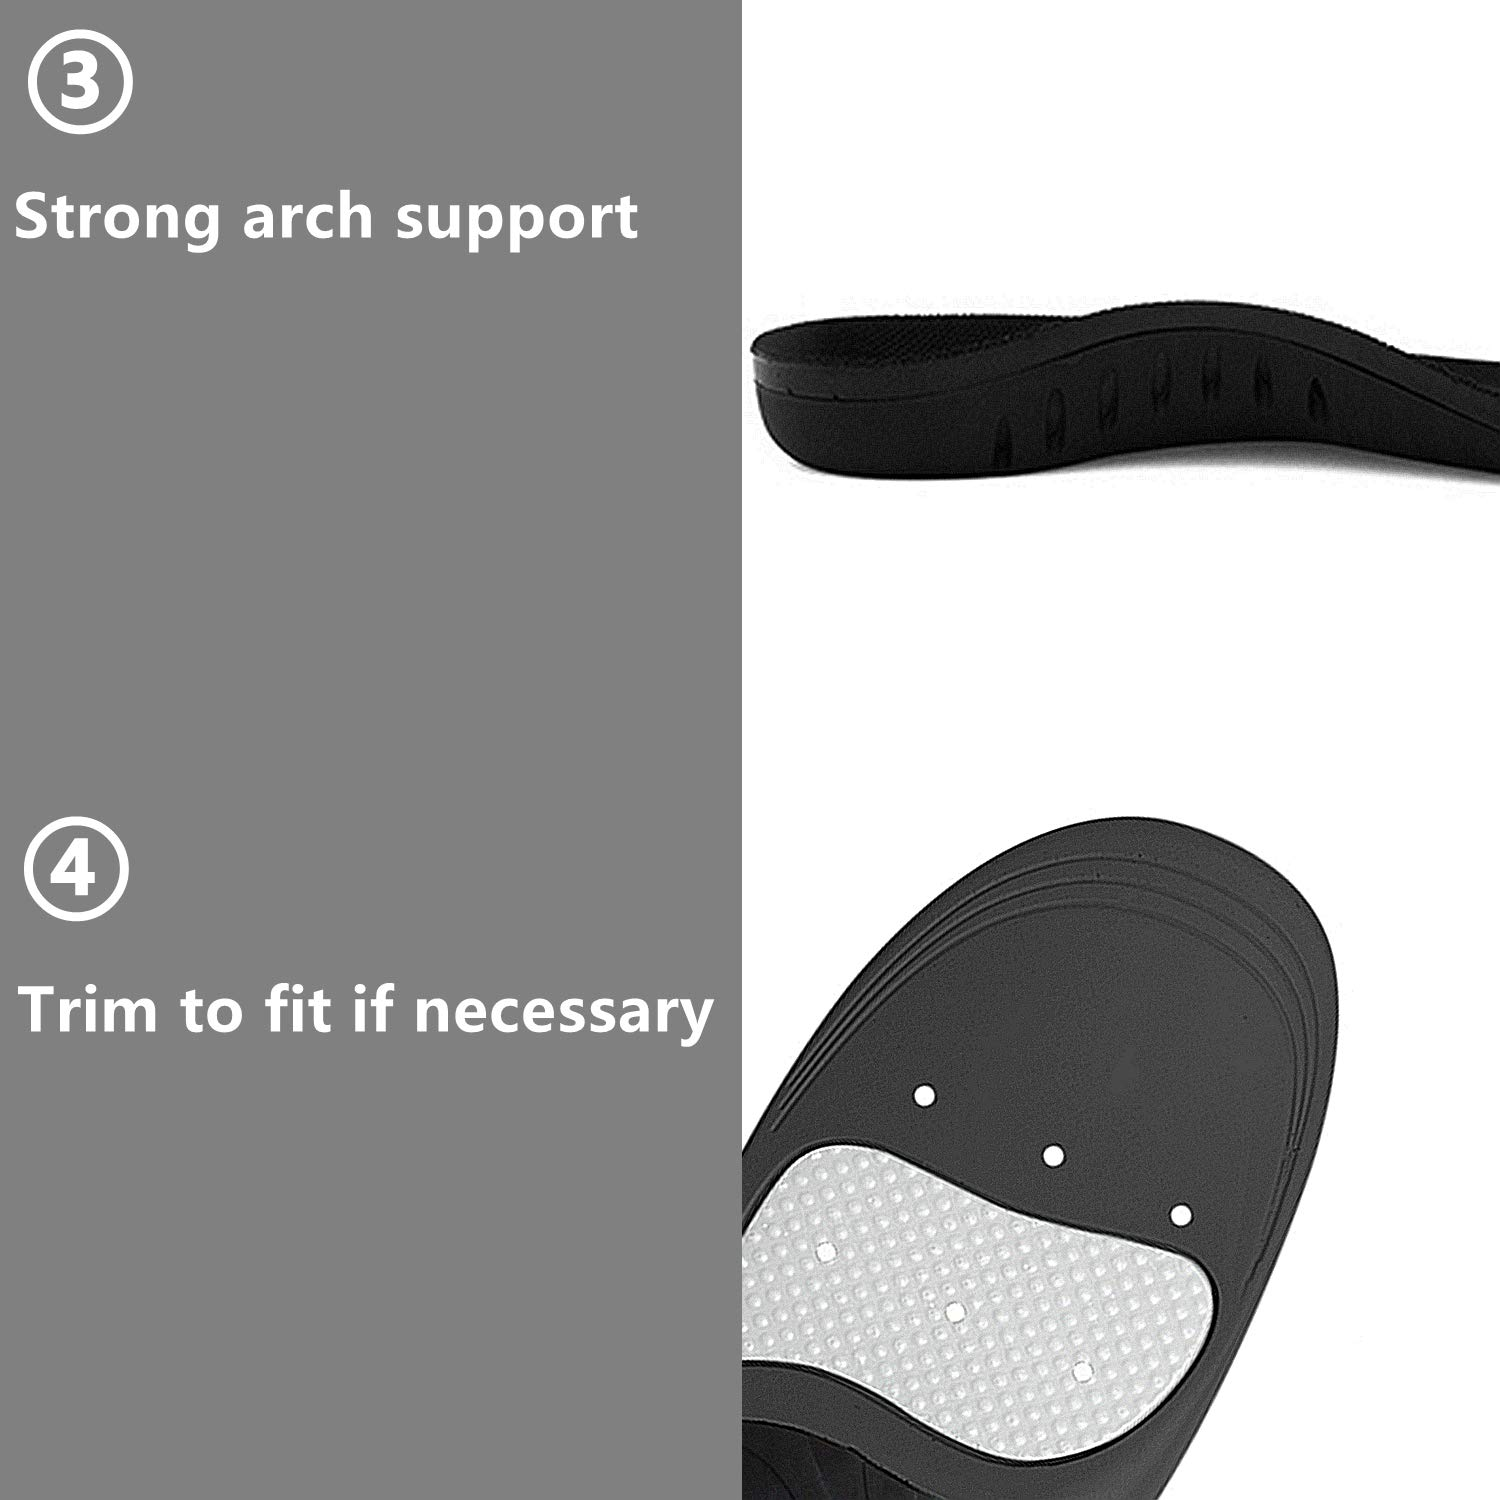 Hyperspace Sports Insole for Gel High Arch Support Shoe Inserts Plantar Fasciitis Orthotic Inserts Maximum Comfort and Shock Absorption for Flat Feet and Injury Prevention (Black XL) by Hyperspace (Image #5)